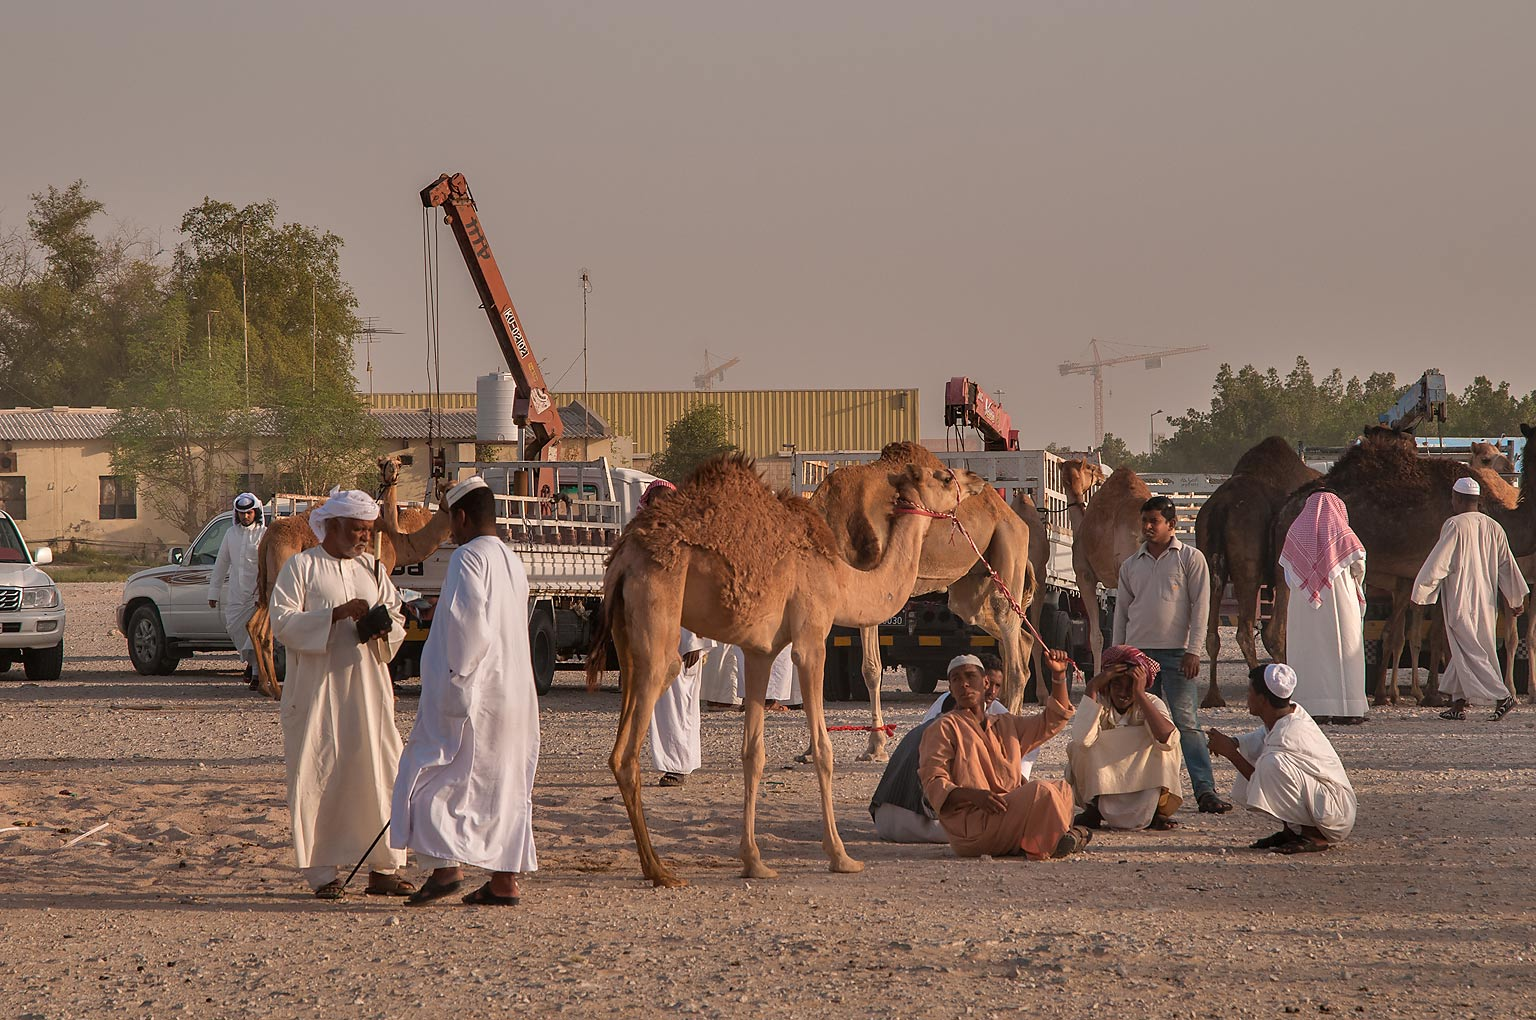 Gathering of people and camels in Livestock Market, Abu Hamour area. Doha, Qatar